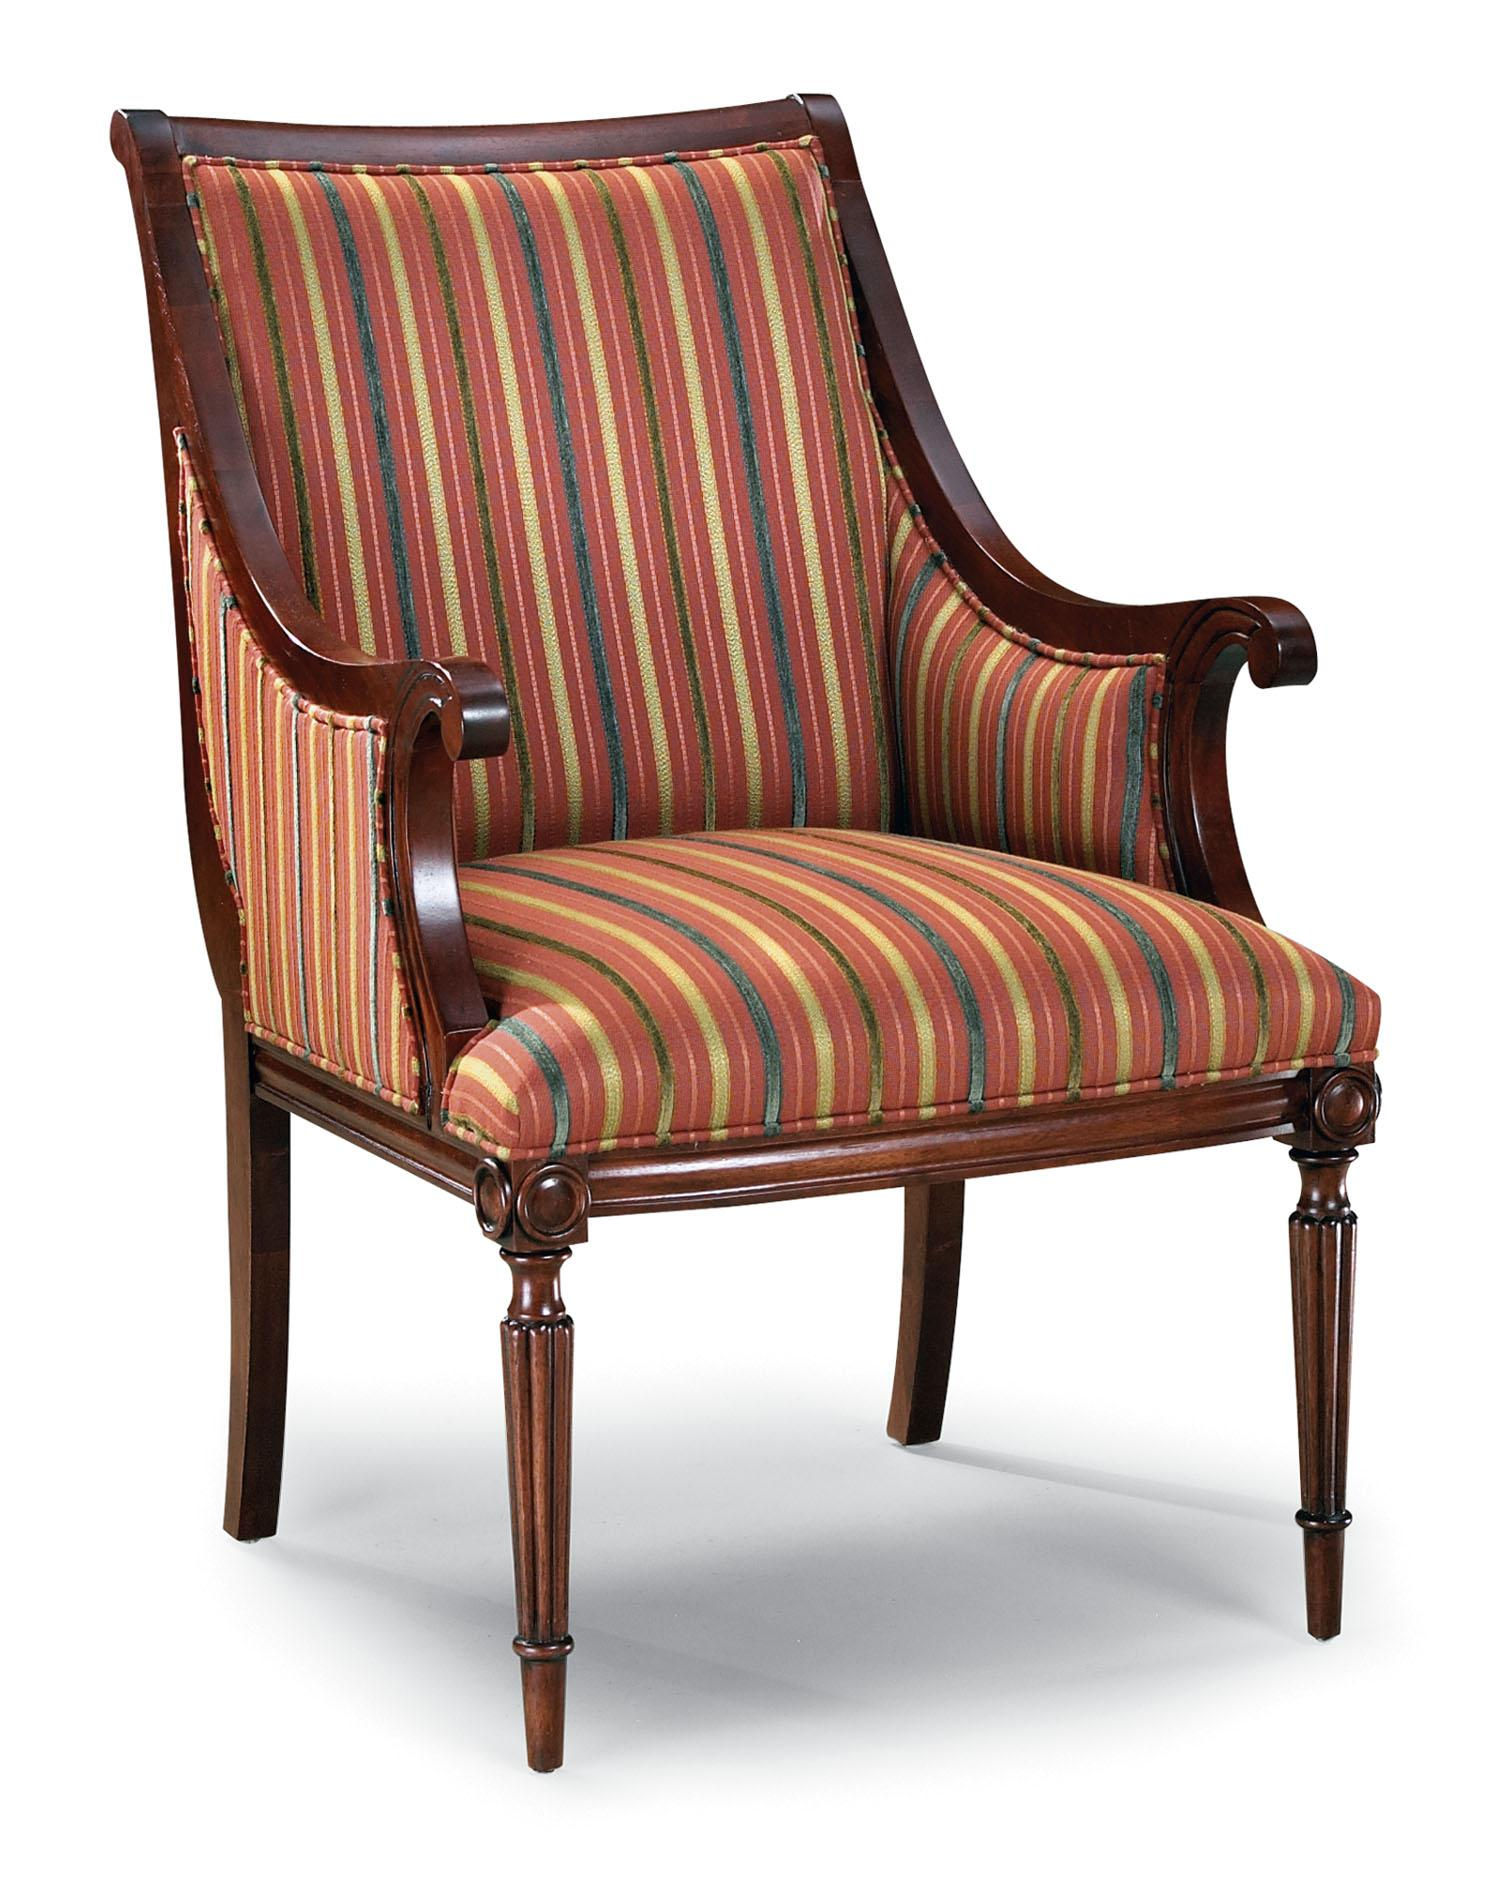 Fairfield Chairs Exposed Wood Accent Chair - Item Number: 5405-01